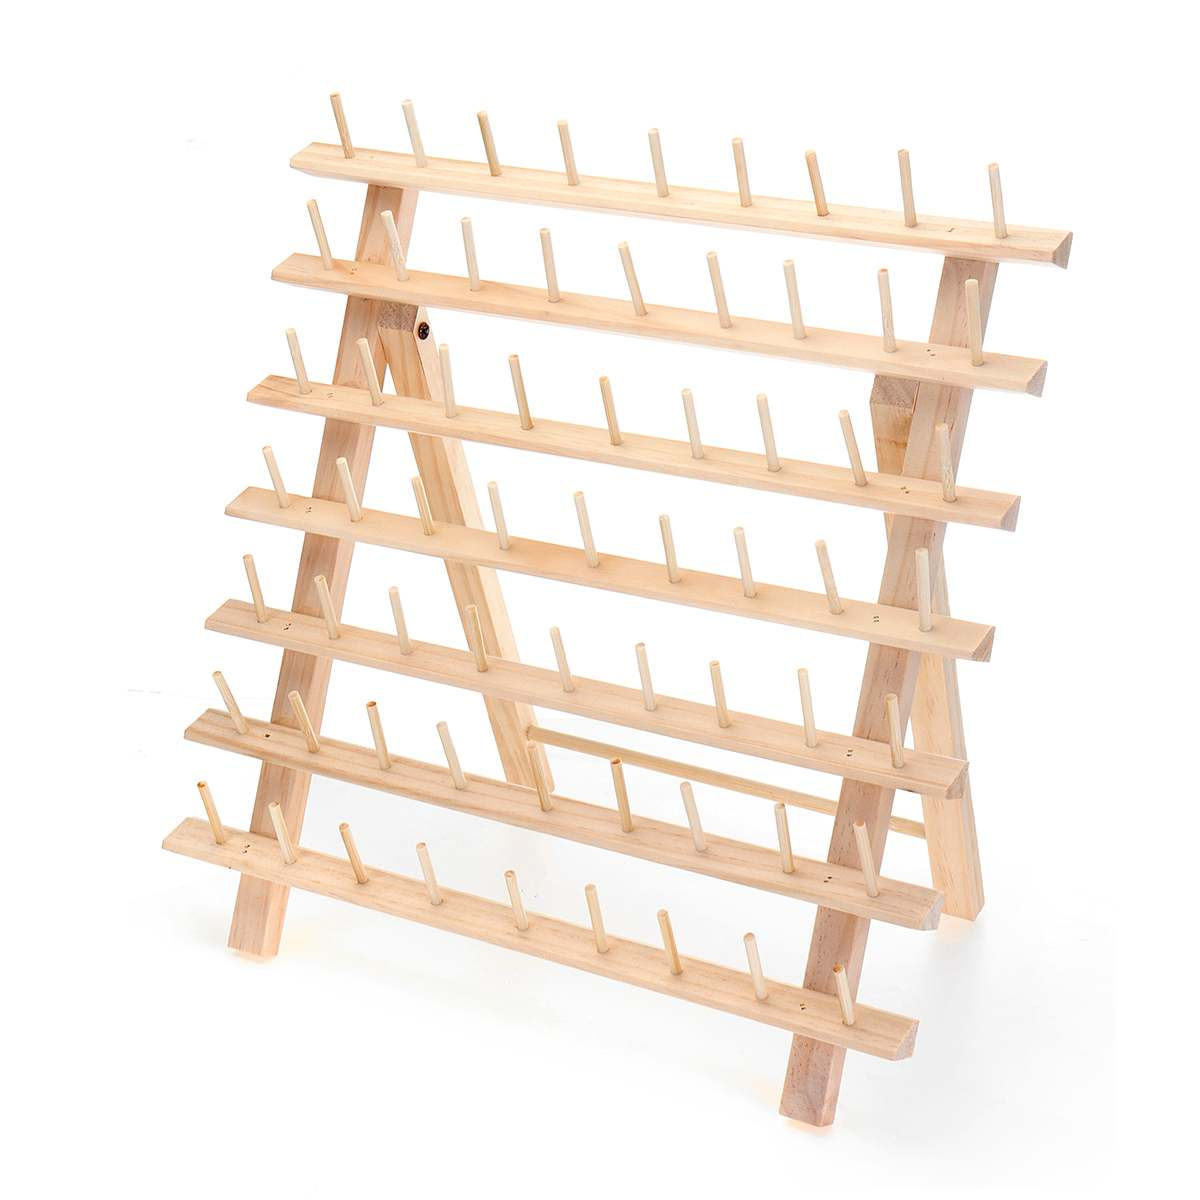 KIWARM 63 Axis Small Line Smaller Spool Wooden Folding Sewing Rack Log Color Wire Roll Frame Free-standing 39x18x37cmKIWARM 63 Axis Small Line Smaller Spool Wooden Folding Sewing Rack Log Color Wire Roll Frame Free-standing 39x18x37cm